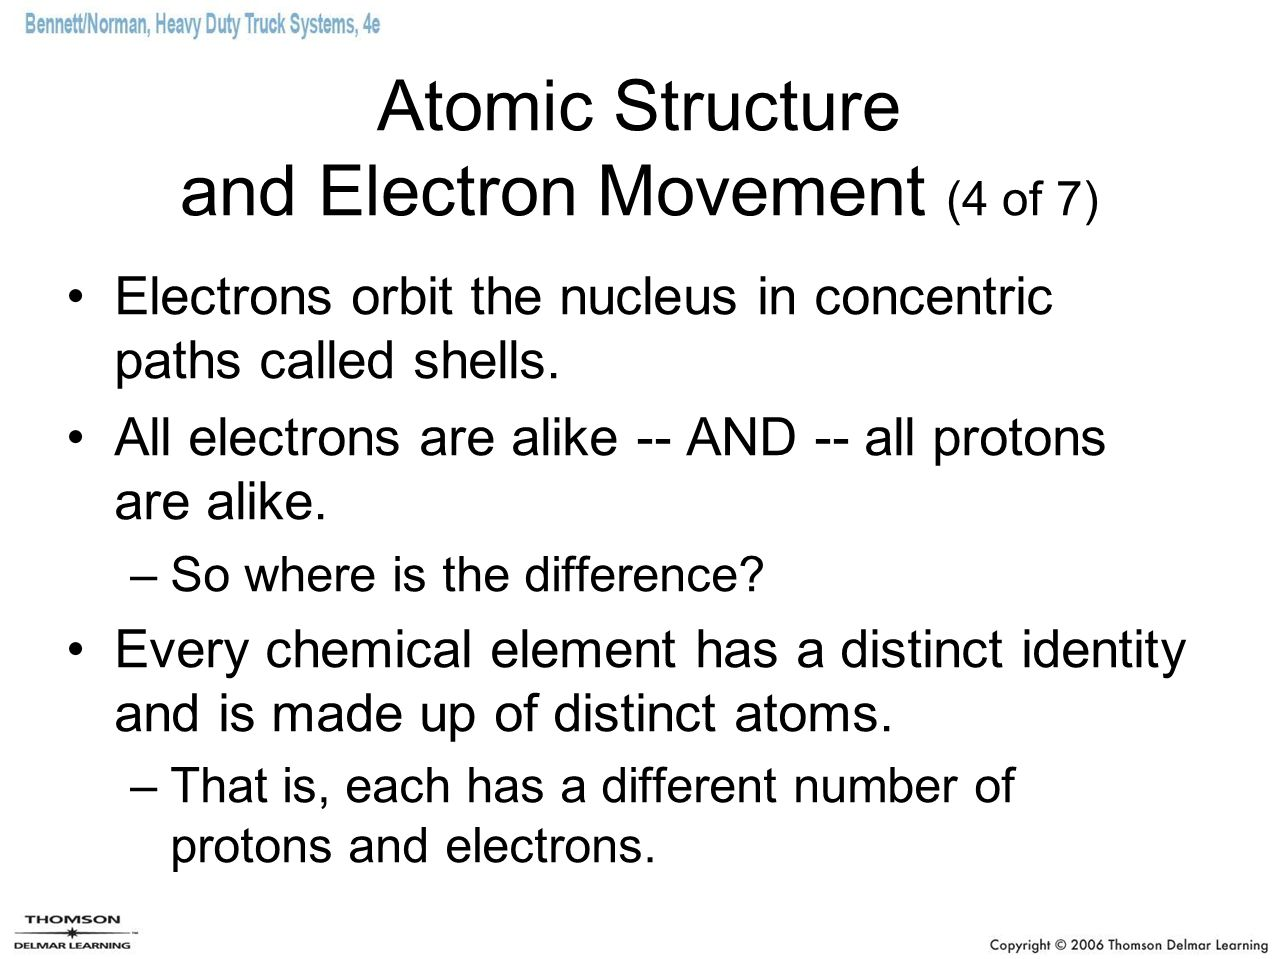 Atomic Structure and Electron Movement (4 of 7)